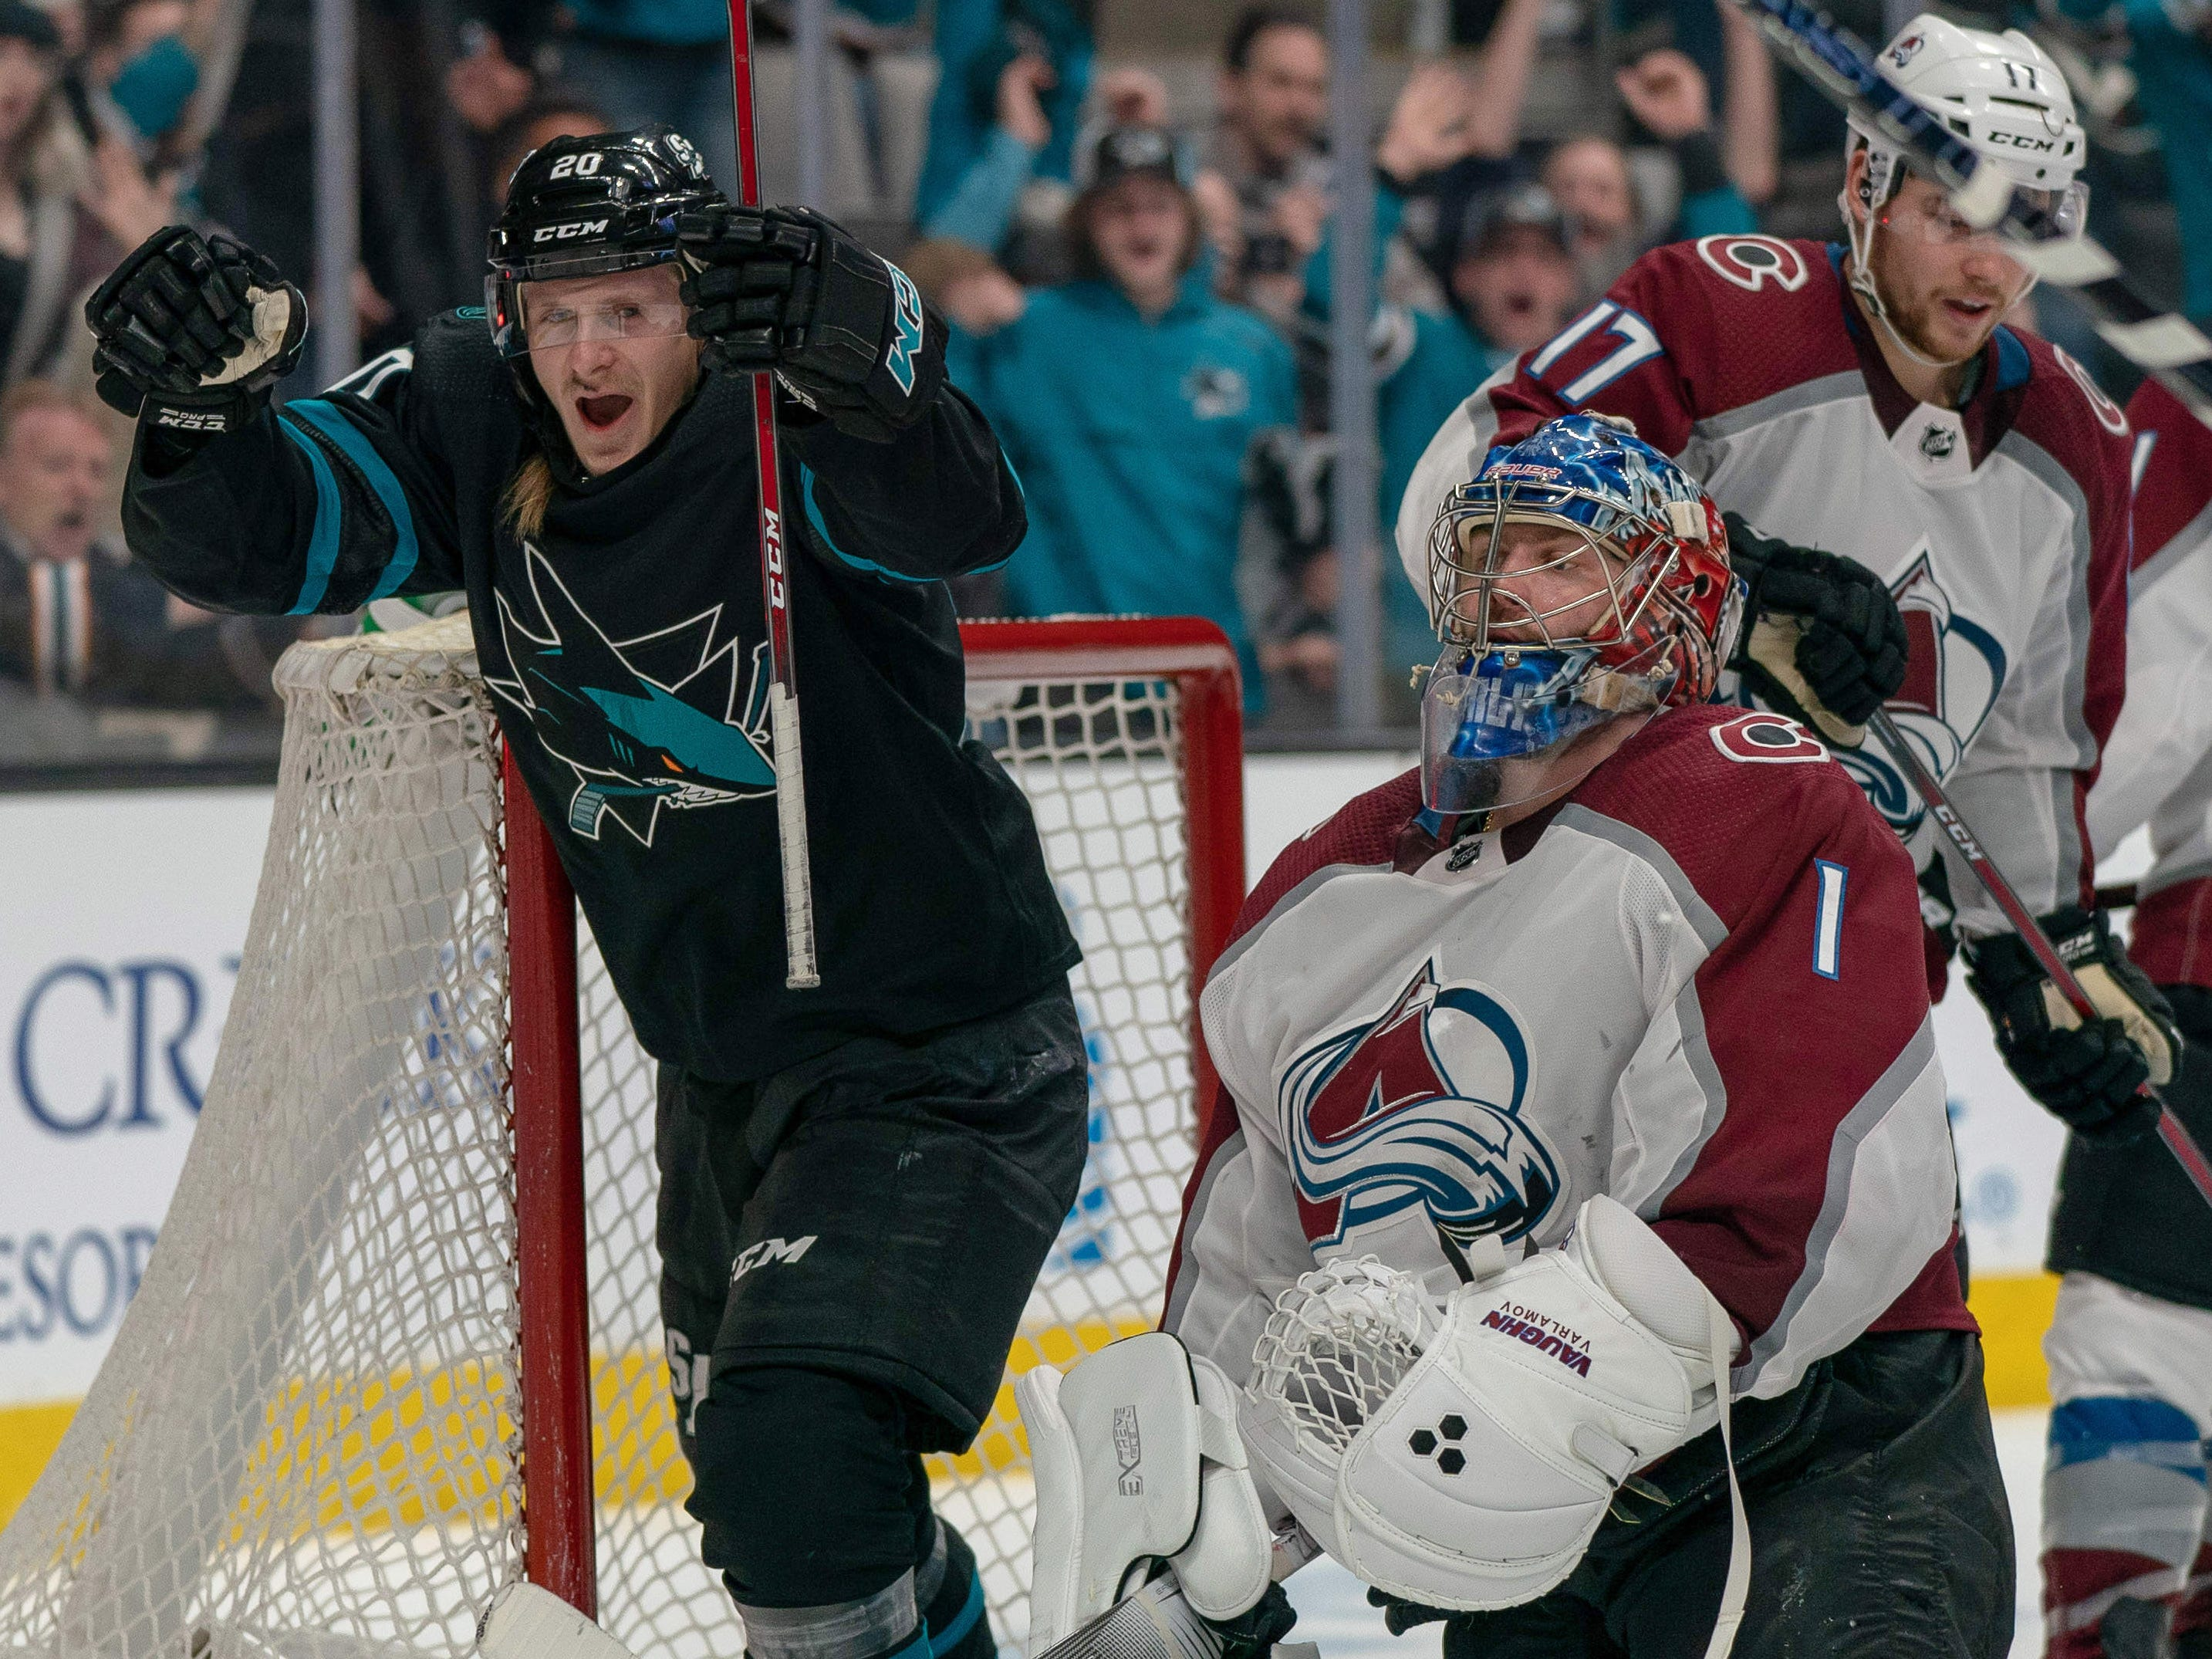 March 1: San Jose Sharks right wing Marcus Sorensen celebrates his second-period goal against Colorado Avalanche goaltender Semyon Varlamov. He scored twice in the game.